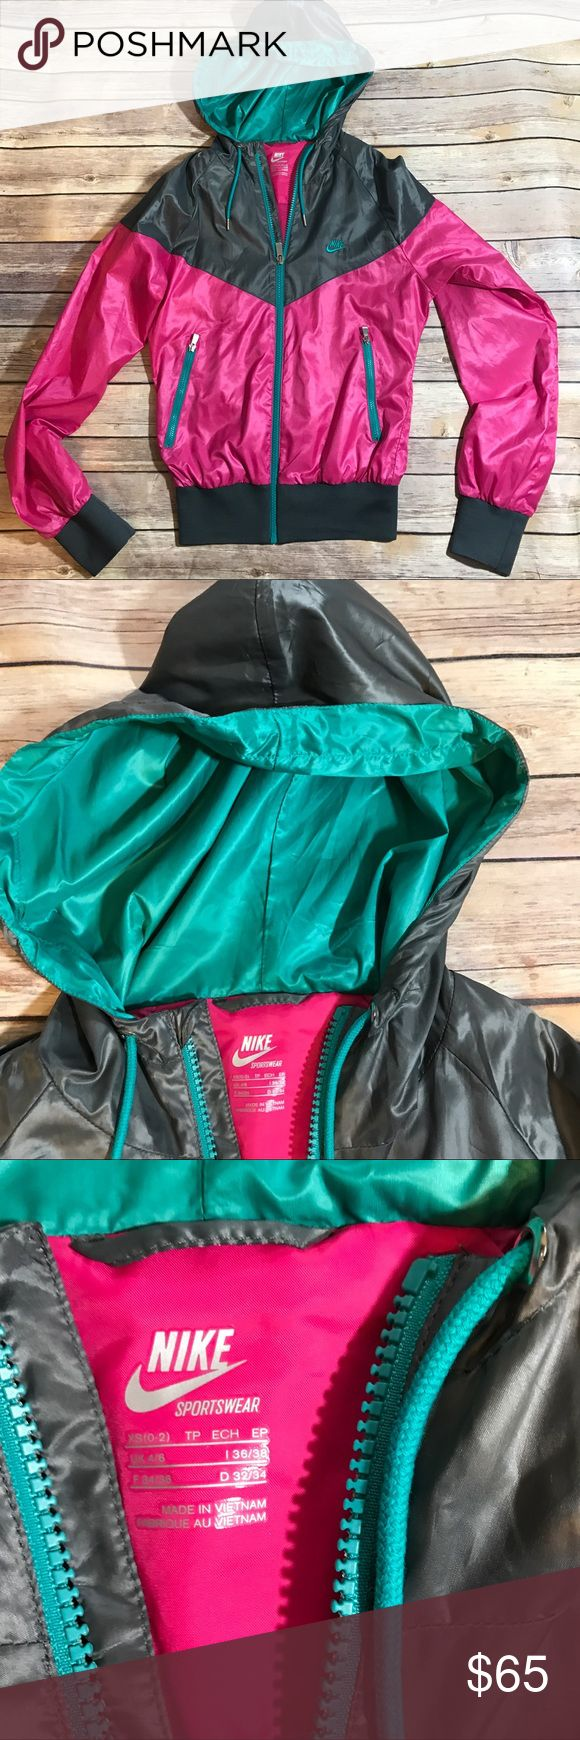 Nike Windrunner jacket Iconic Nike Windrunner jacket in excellent condition!  Pink and grey with teal details. No trades. Nike Jackets & Coats